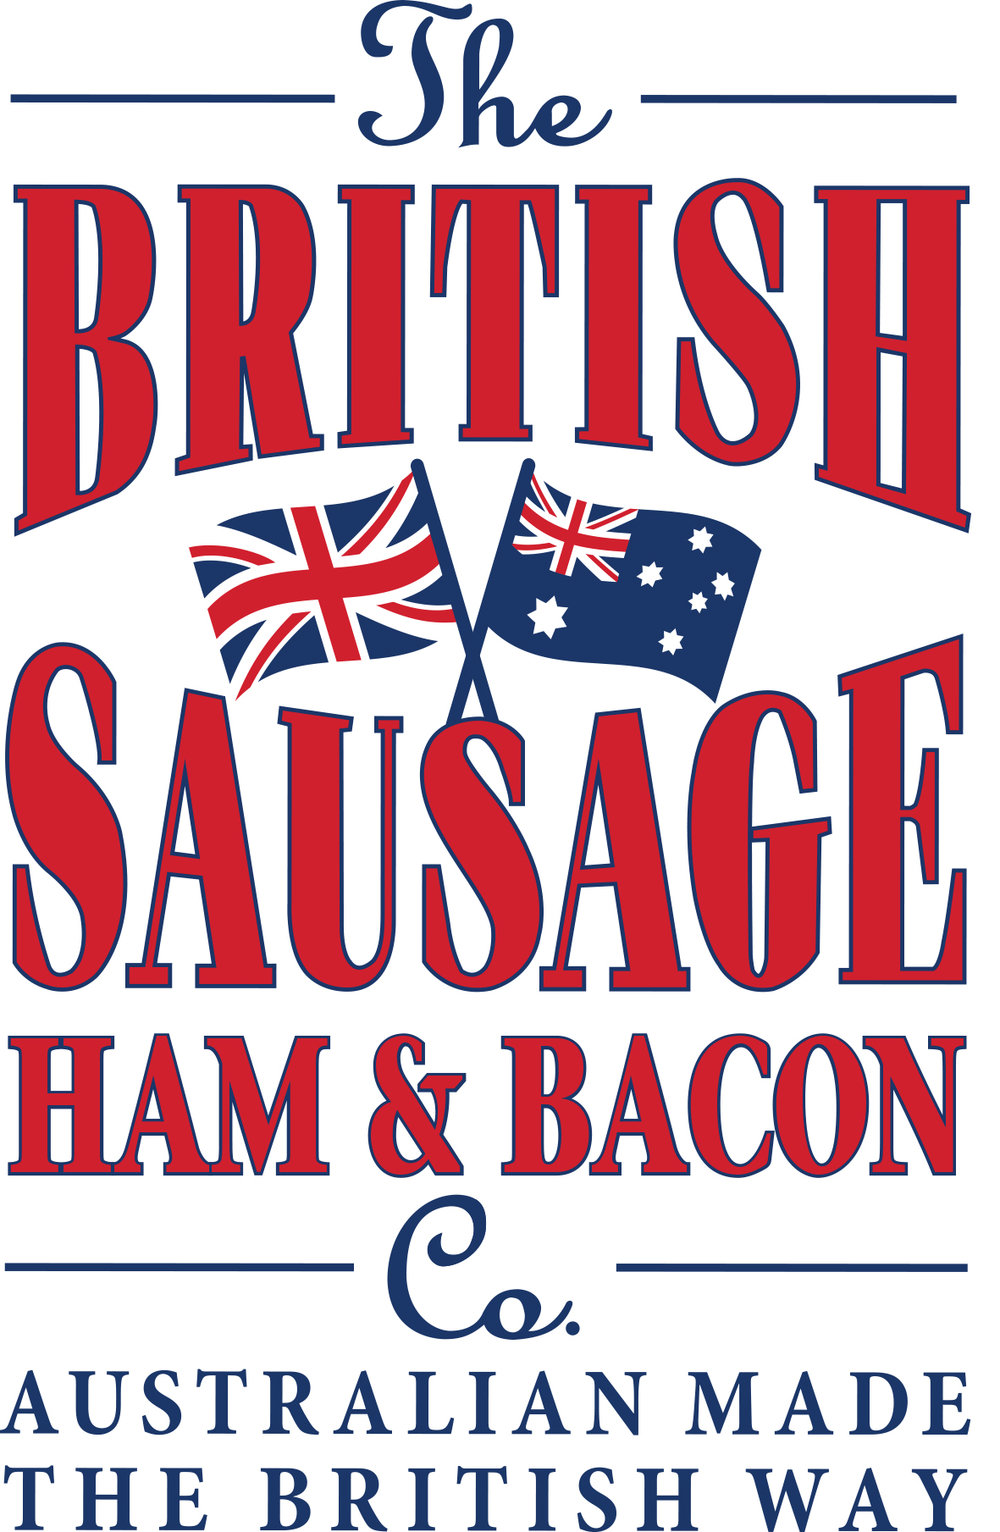 The British Sausage Company